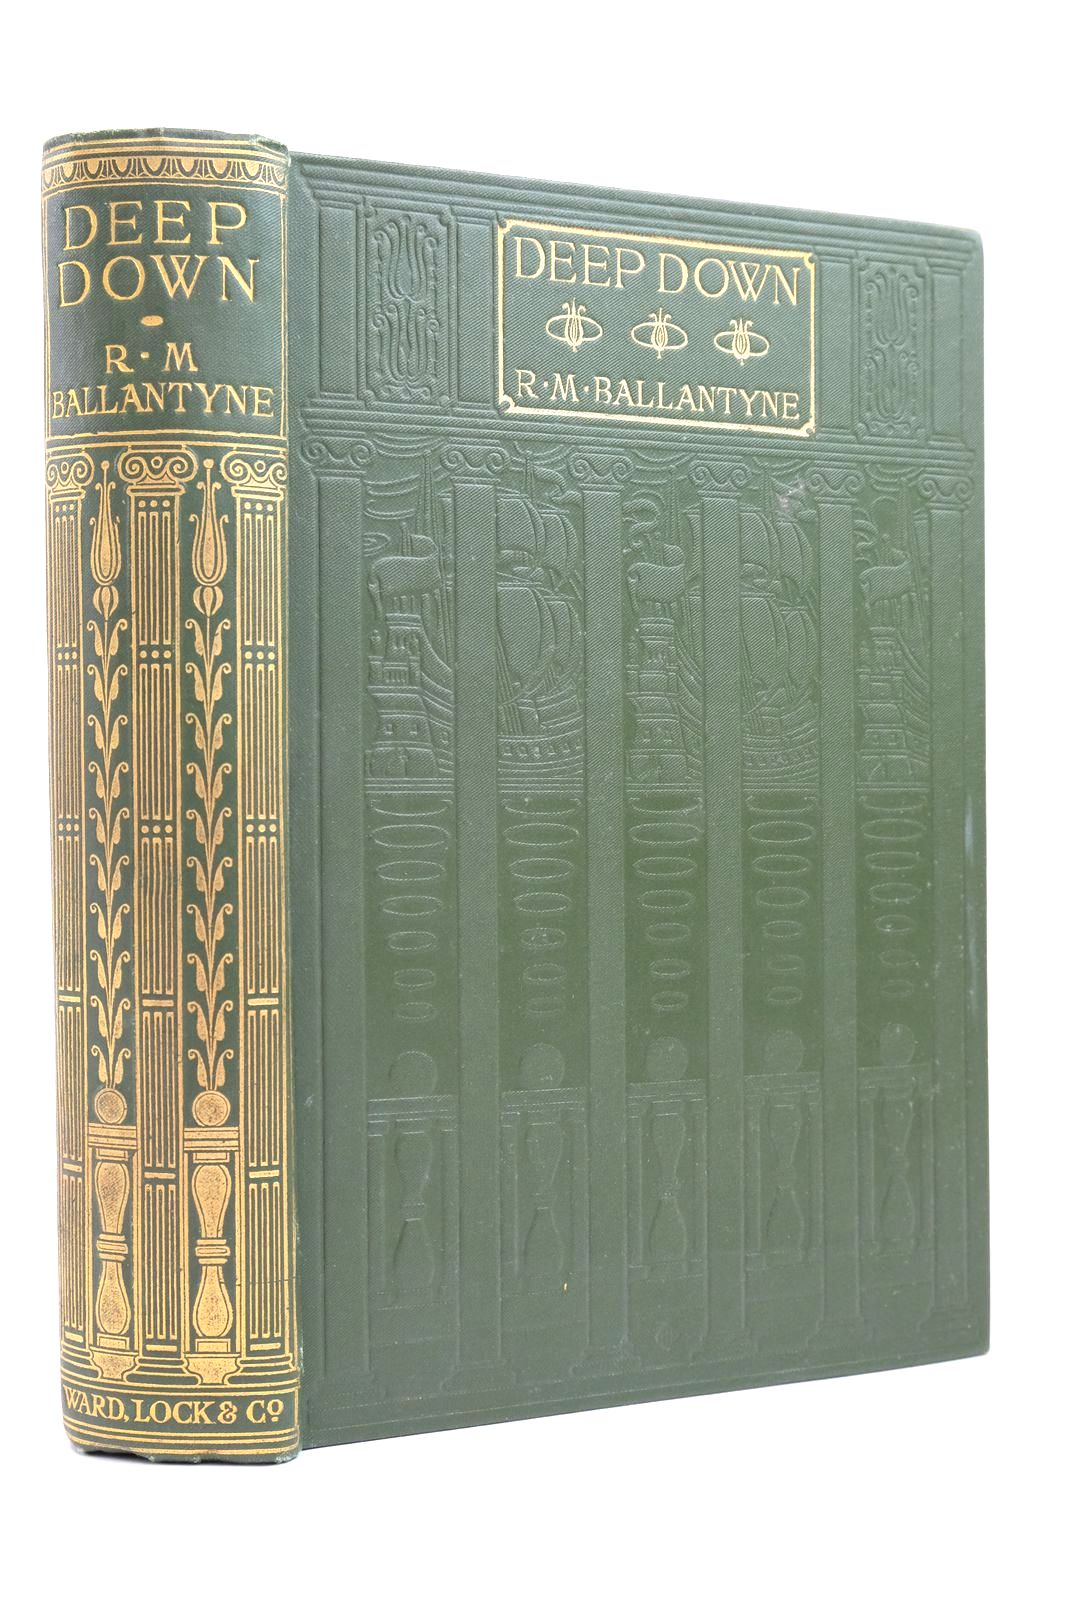 Photo of DEEP DOWN written by Ballantyne, R.M. published by Ward Lock & Co Ltd. (STOCK CODE: 2134838)  for sale by Stella & Rose's Books